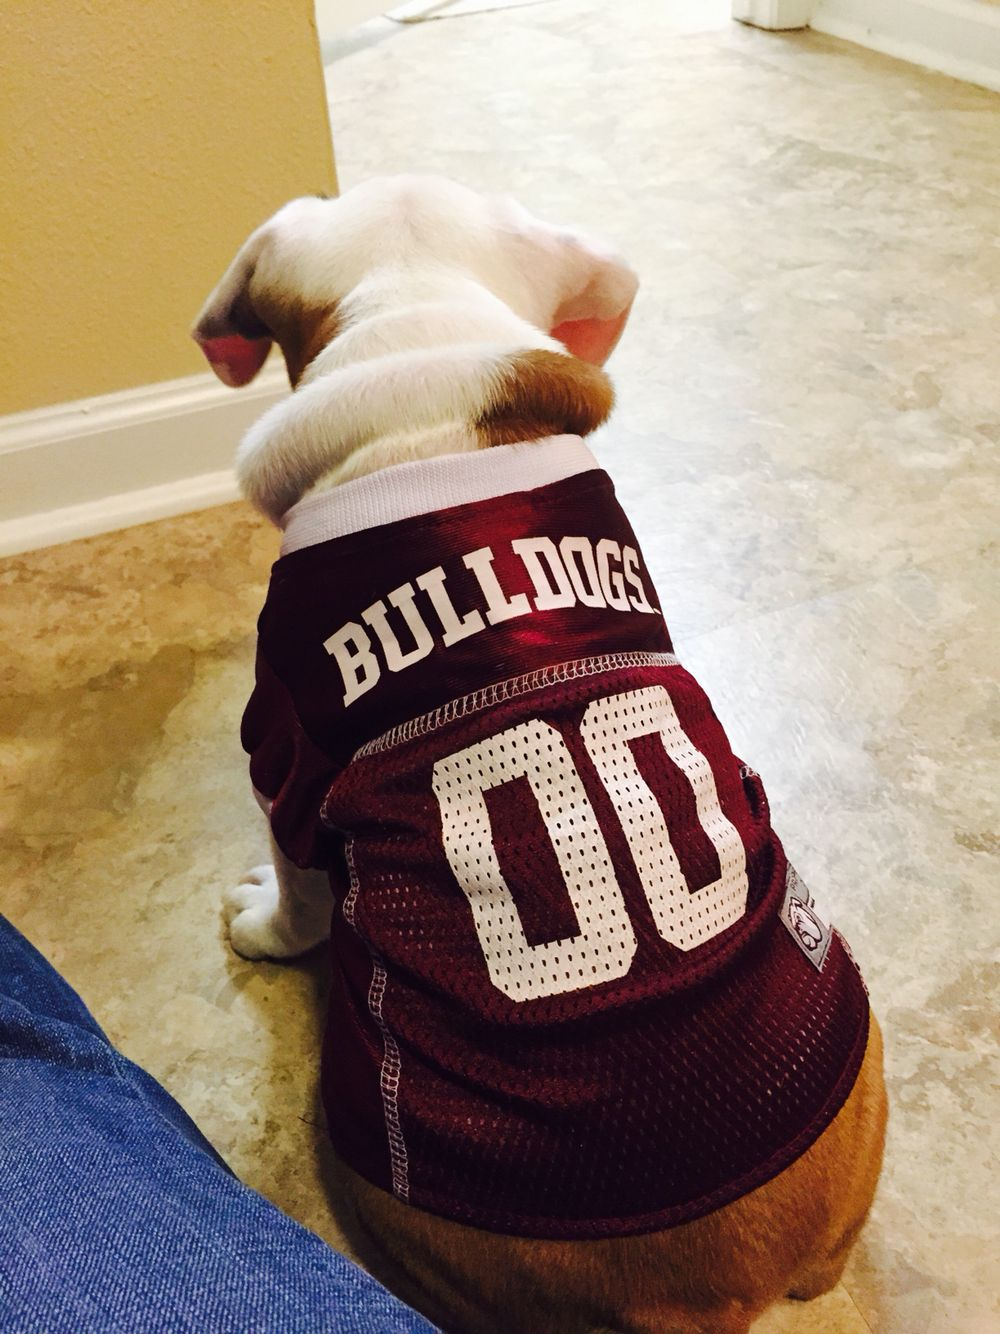 Supporting Mississippi State